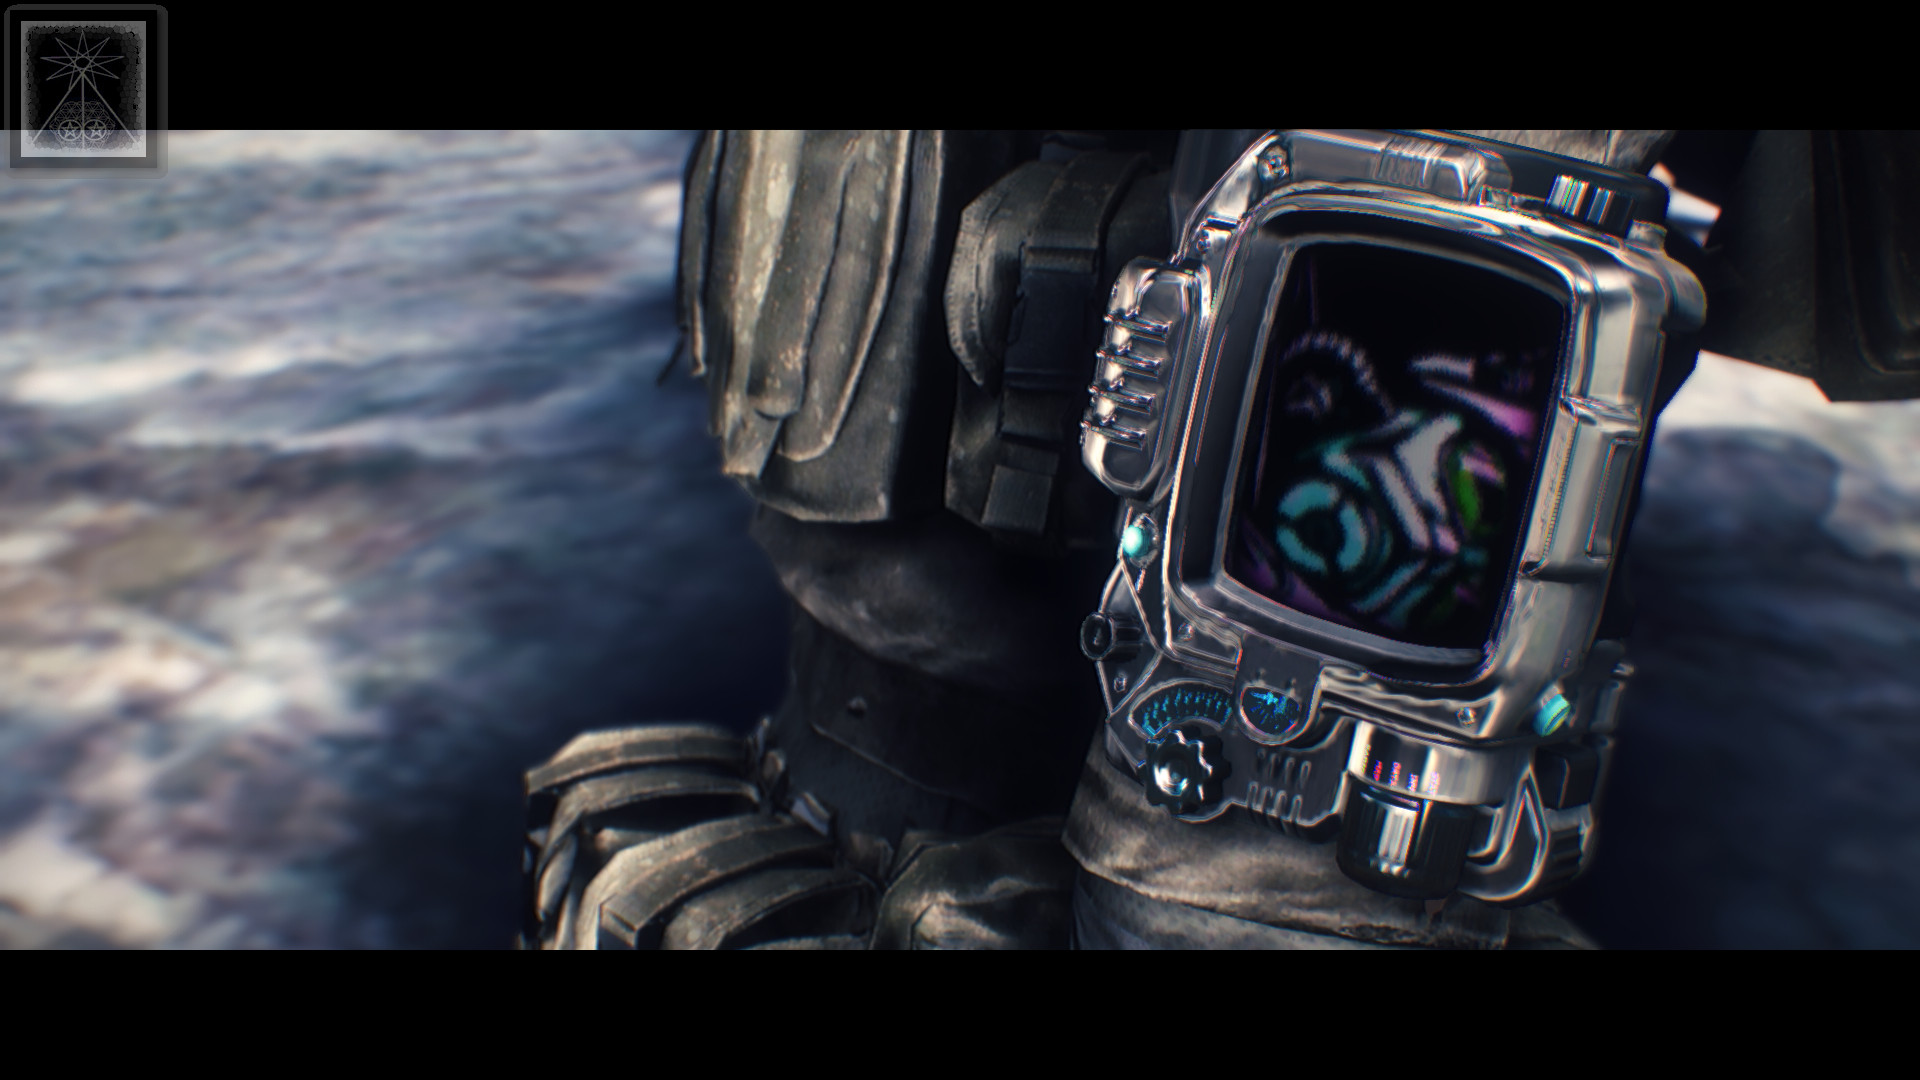 Synthwave Ranger – Pip Boy Wallpaper at Fallout 4 Nexus – Mods and community